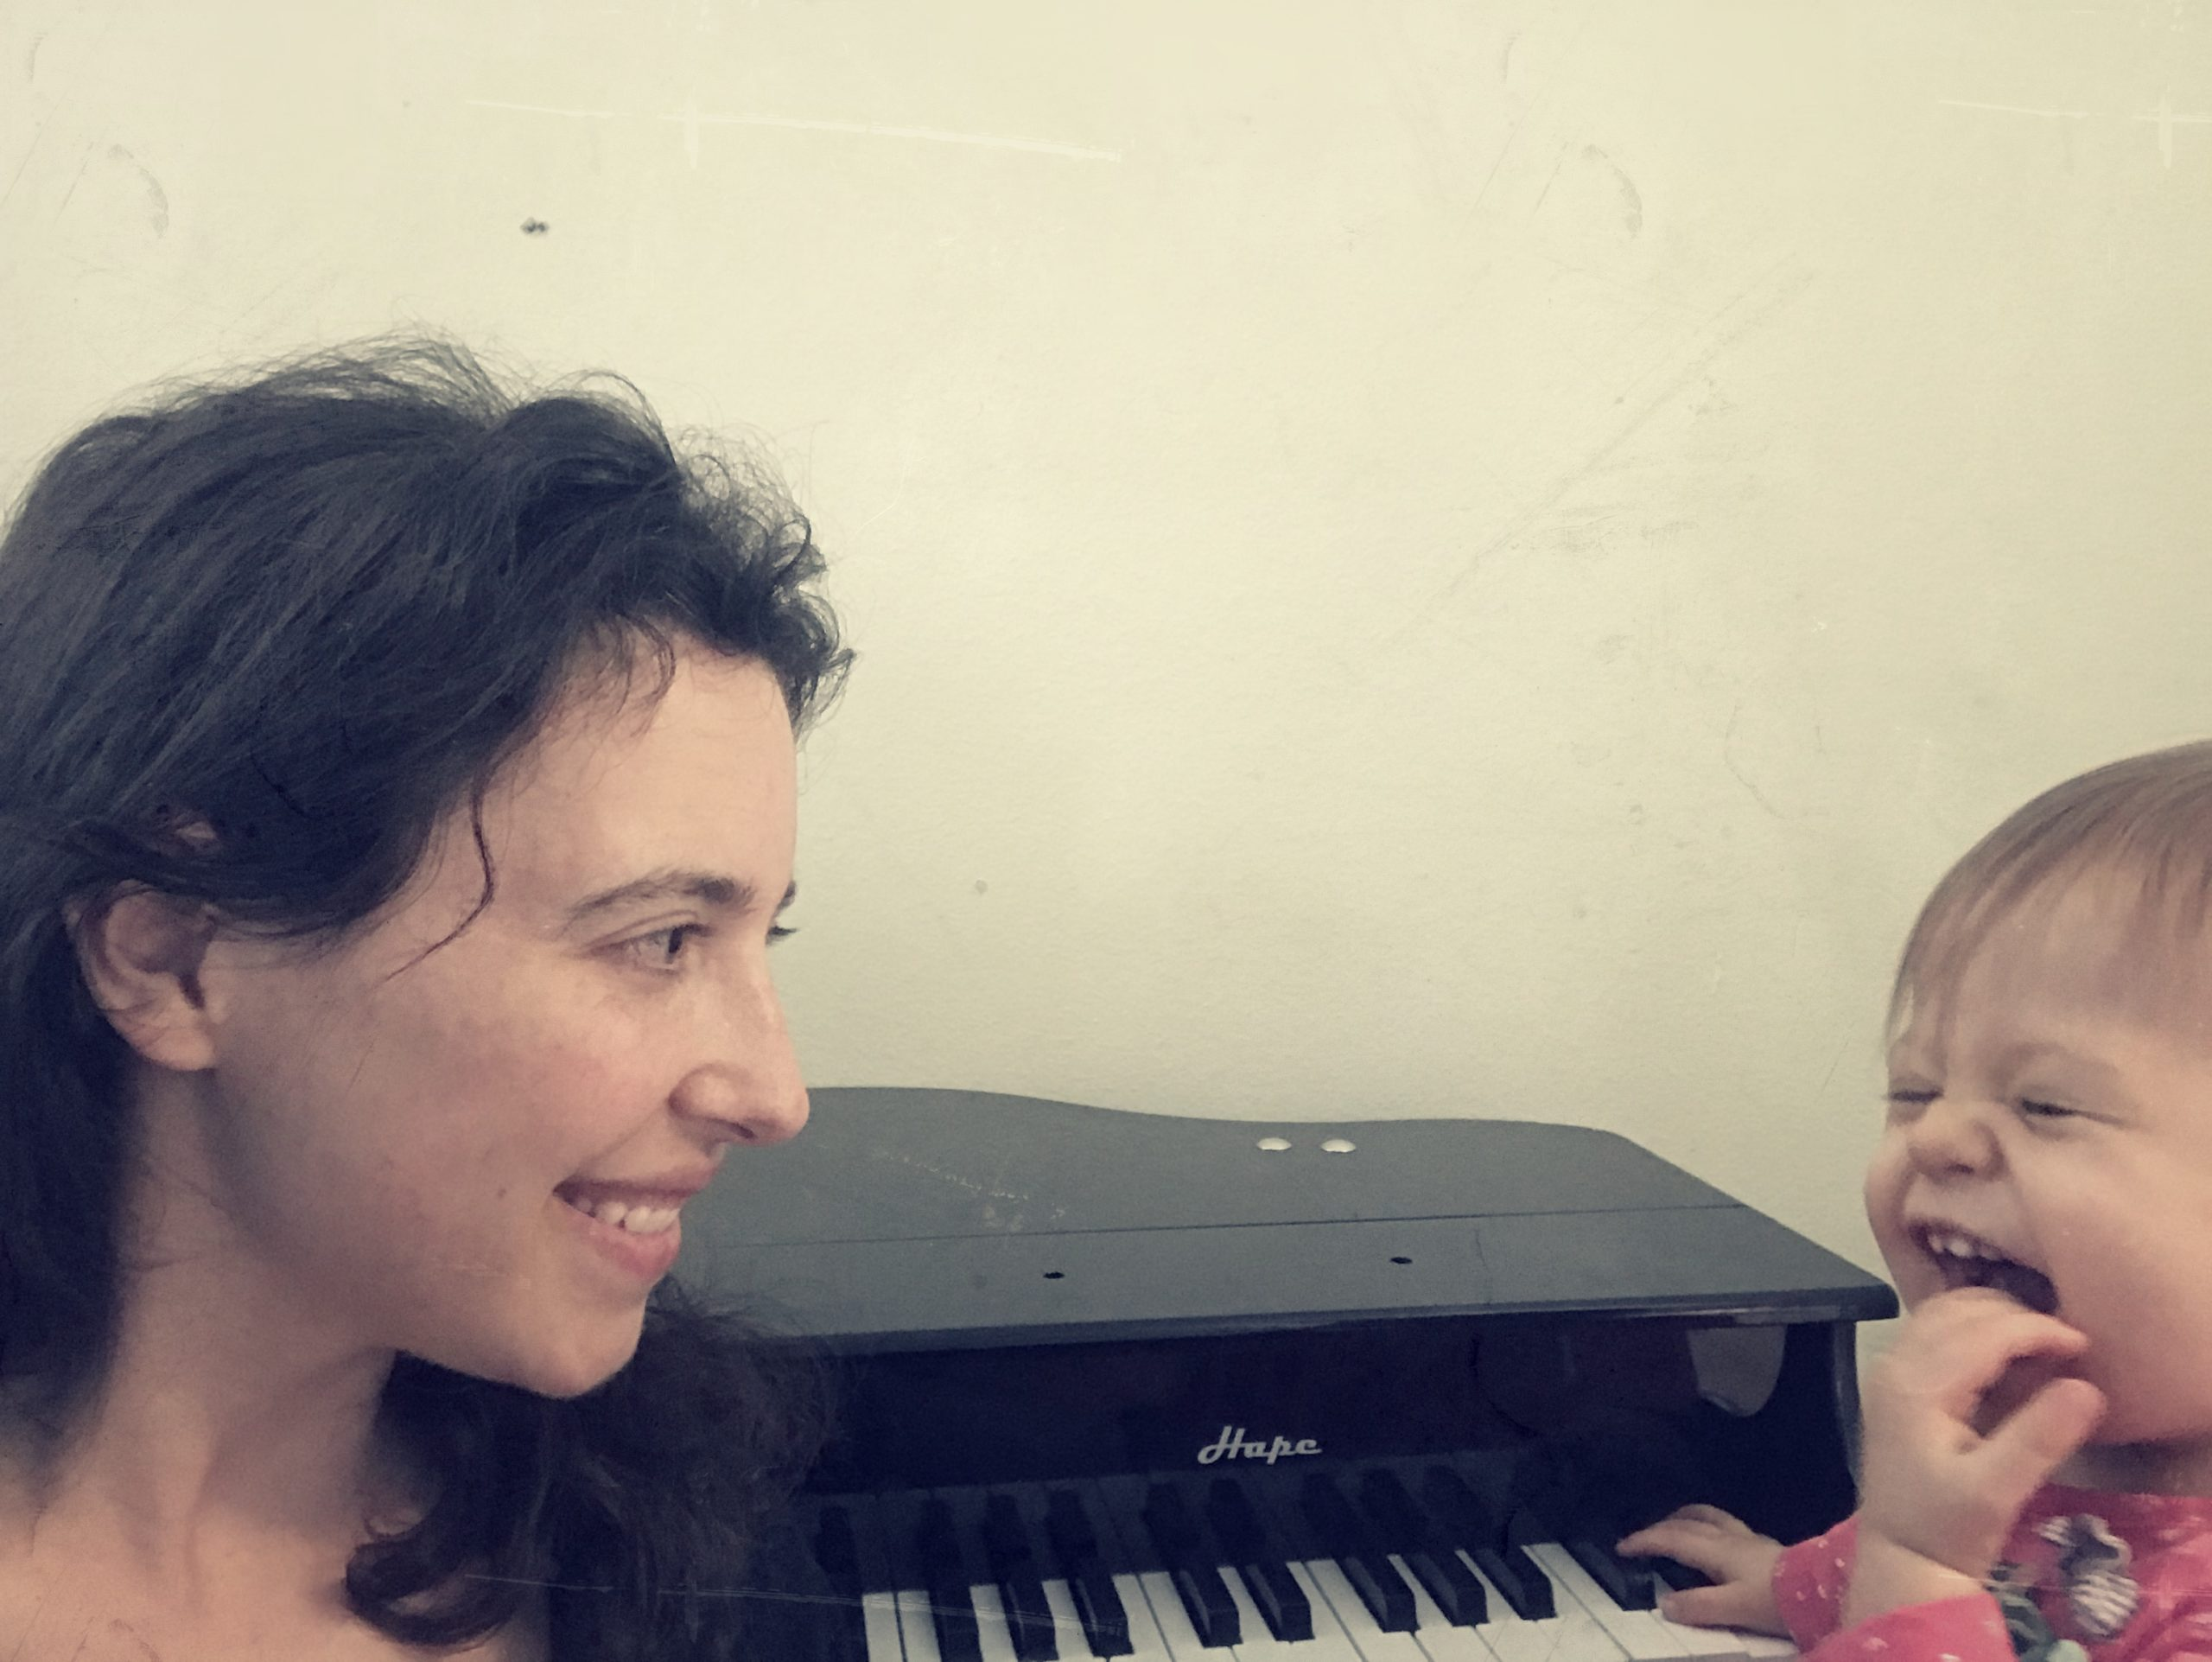 Sarah Lewis: On Thinking Useful Thoughts, Gratitude, and the Challenge of Auditioning with a Newborn